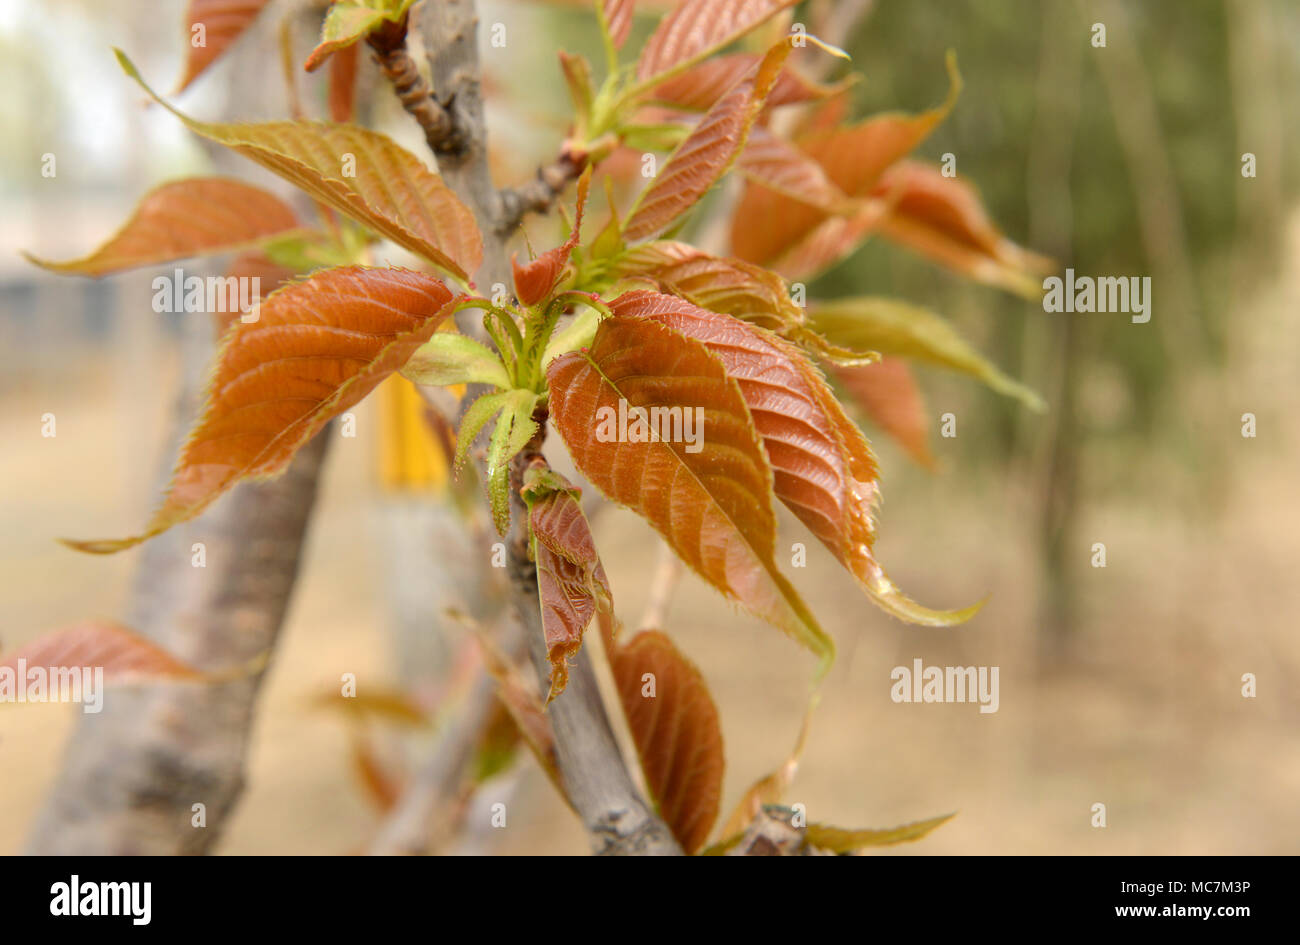 Leaves emerge from a branch tip on a small ornamental tree in Beijing, China - Stock Image